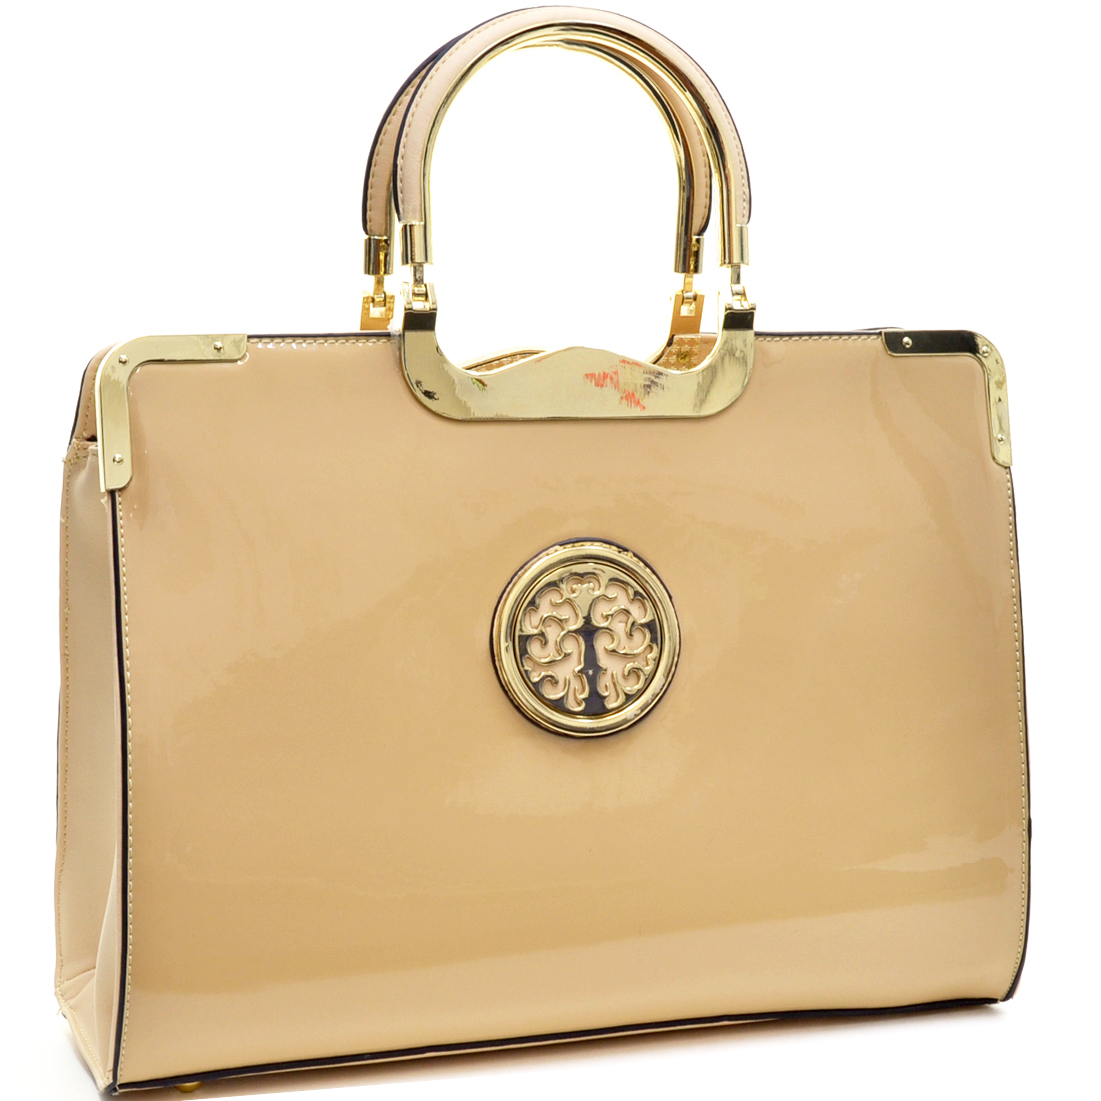 Faux Patent Briefcase Emblem Bag with Removable Shoulder Strap